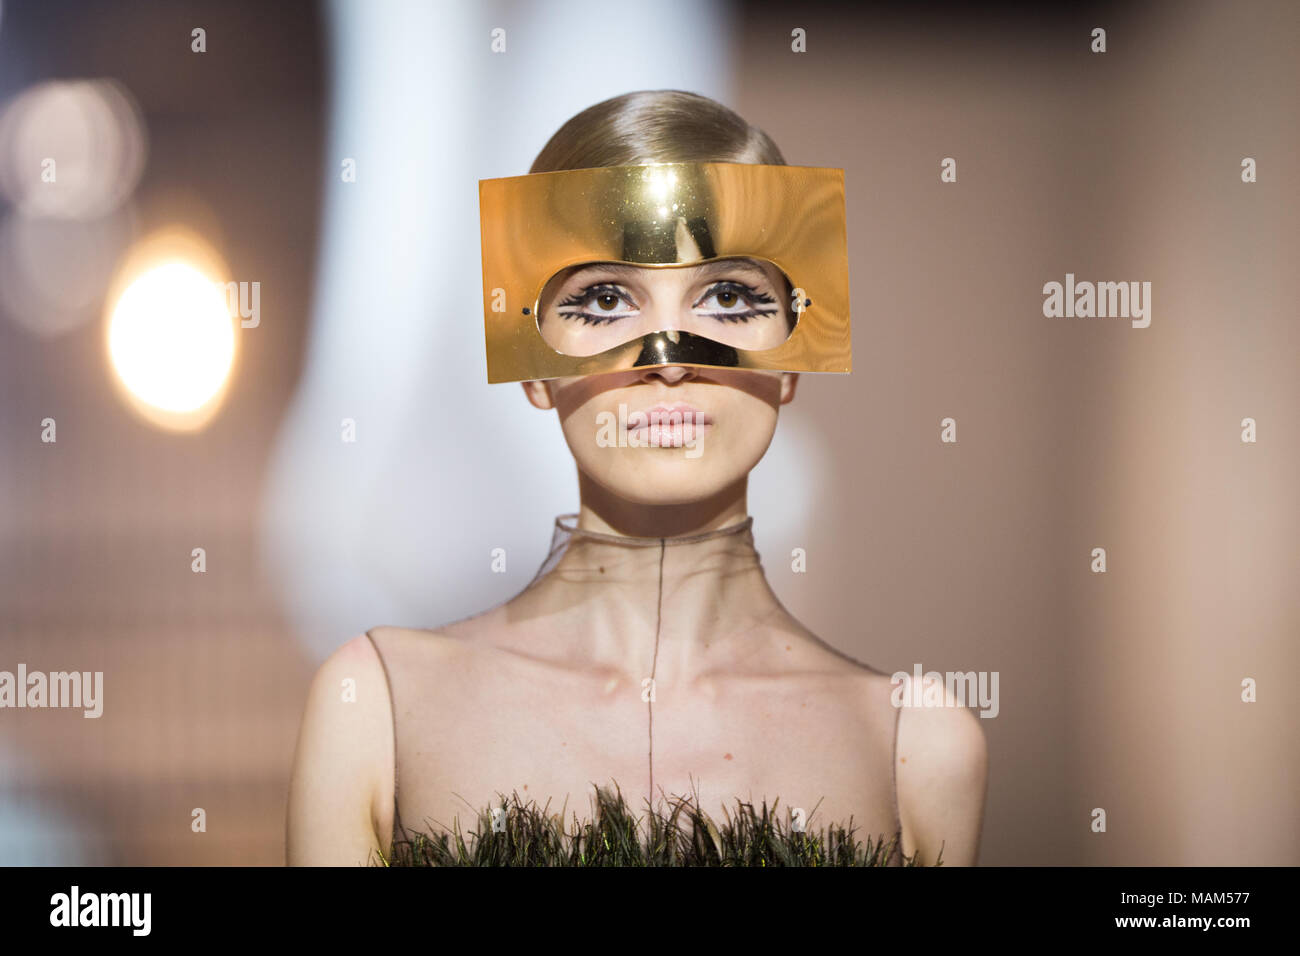 Shanghai, Shanghai, China. 3rd Apr, 2018. Shanghai, CHINA-29th March 2018: The Christian Dior S/S 2018 Haute Couture Show is held in Shanghai. Credit: SIPA Asia/ZUMA Wire/Alamy Live News - Stock Image